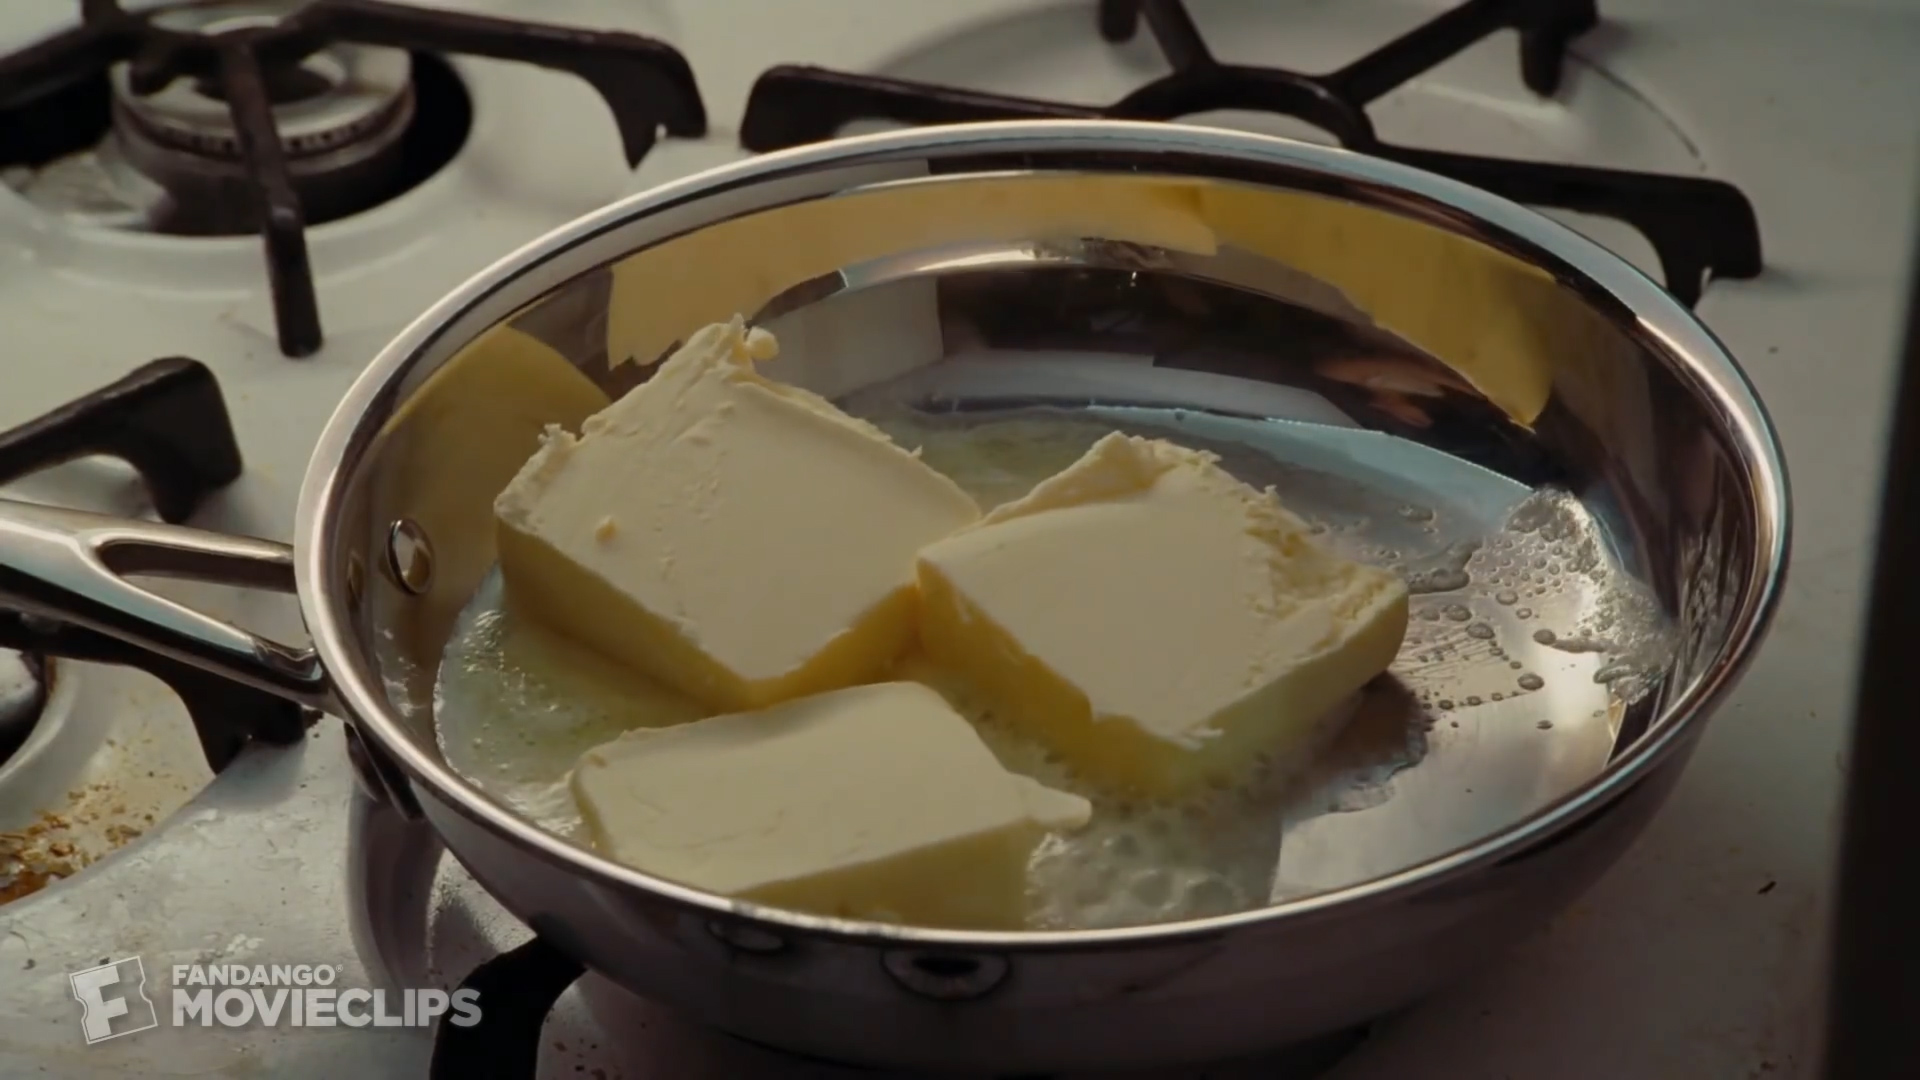 Julie & Julia - You can never have too much butter